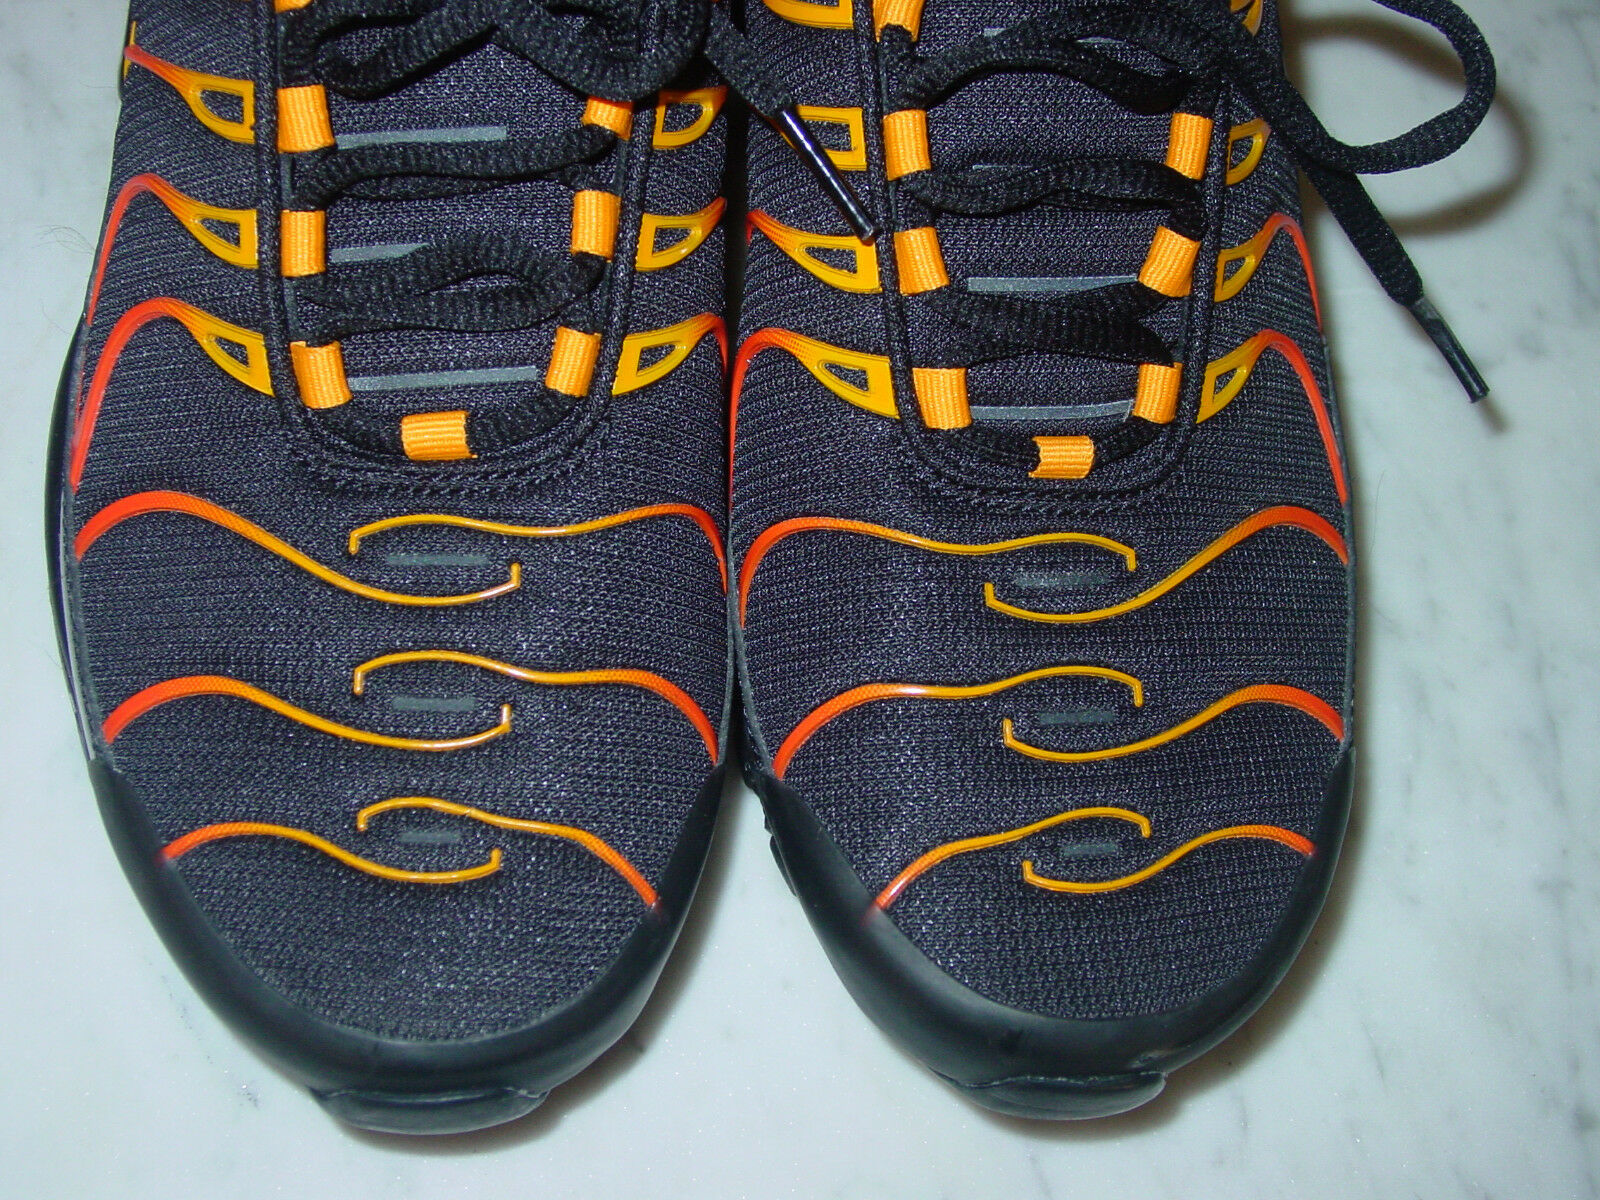 detailed look 9f09f 587f4 ... 2017 Nike Air Max 97 97 97 Plus Engine Shock orange shoes Size 9 SAMPLE  RARE ...